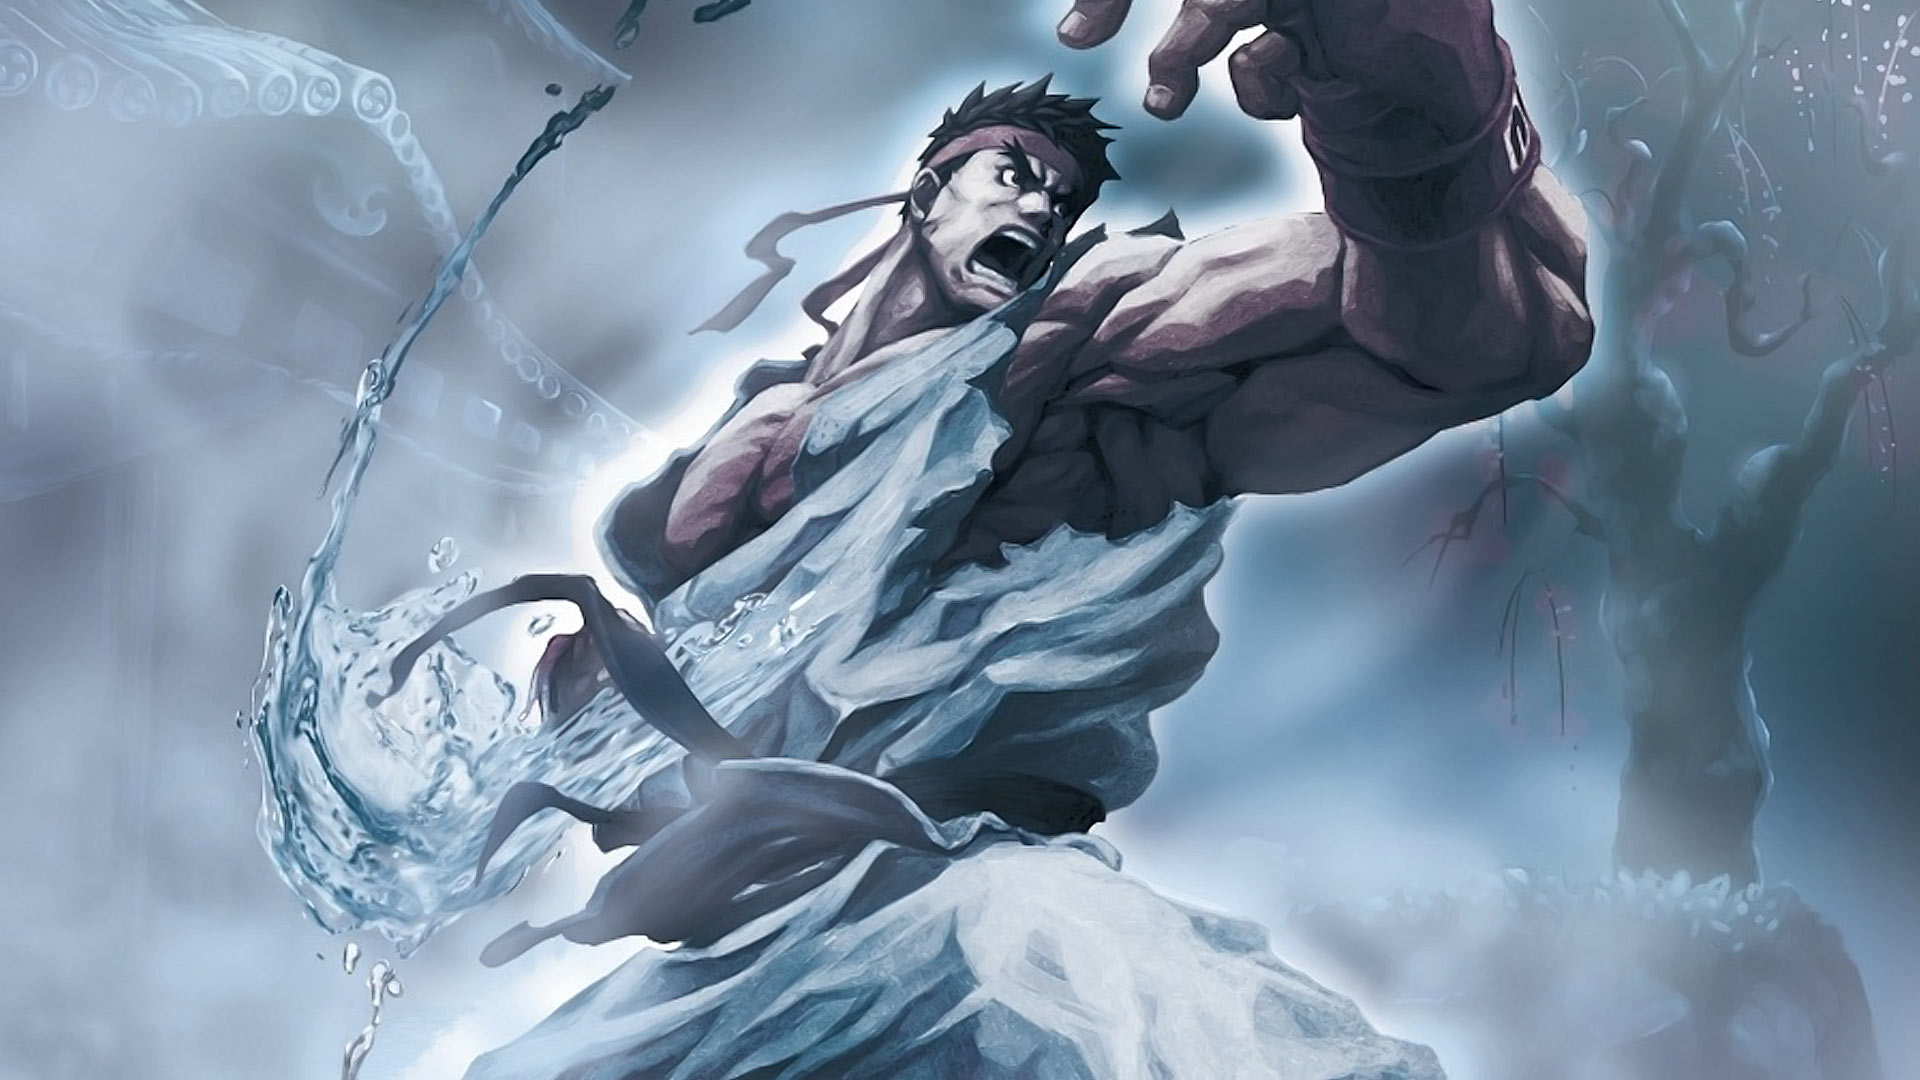 Hd Wallpaper Of Evil Ryu Are Viewing The Main Character